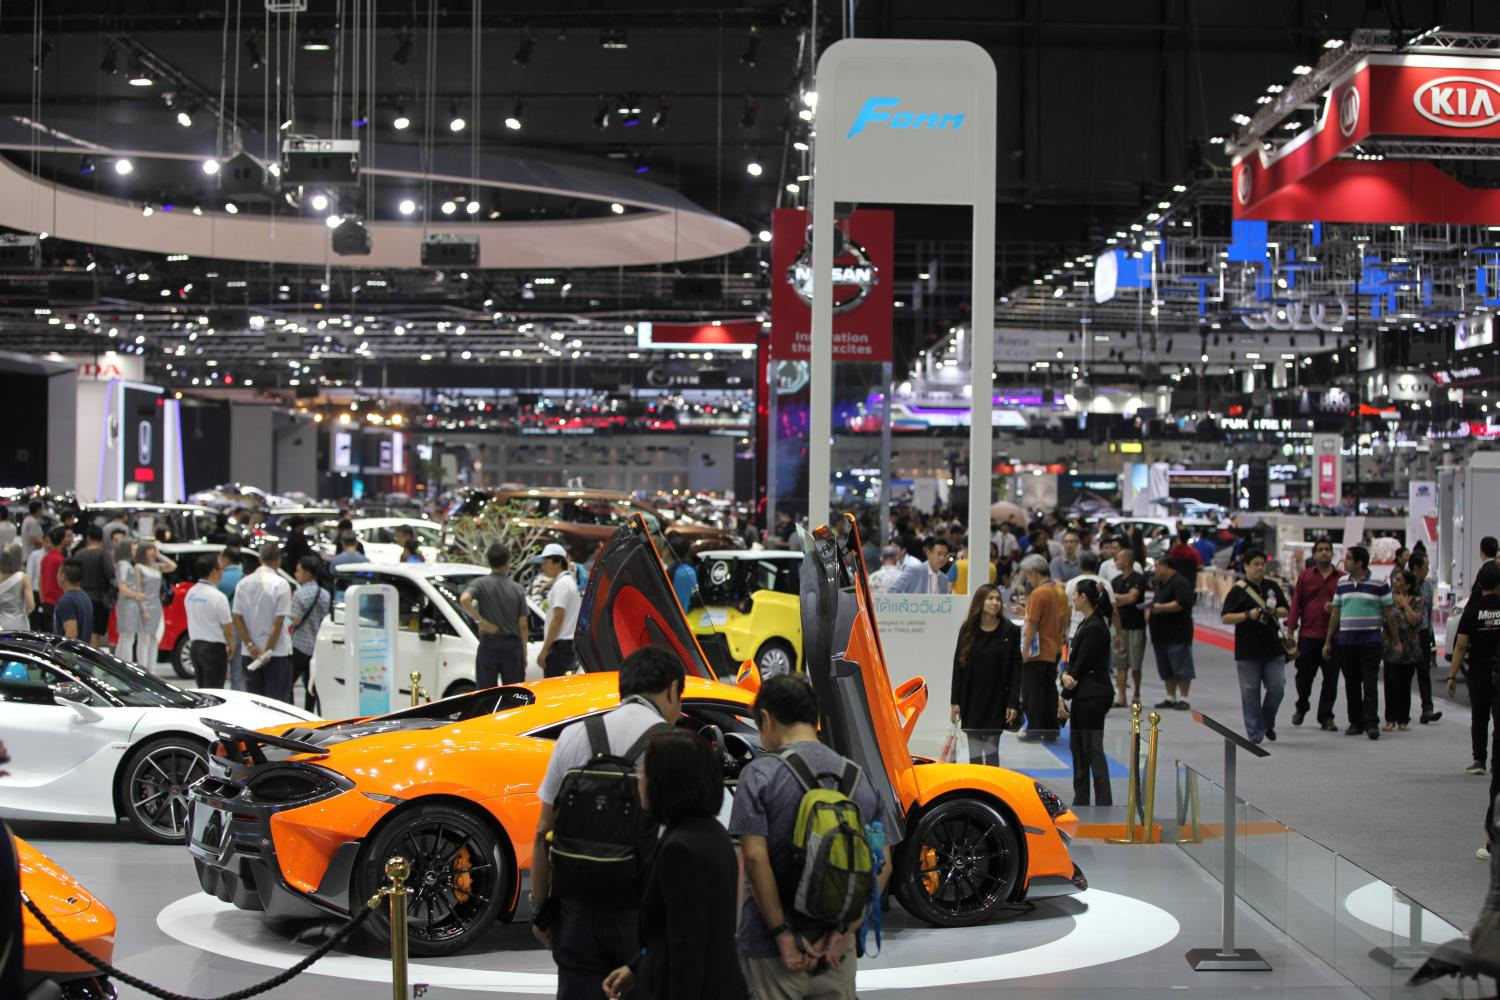 Potential buyers browse vehicles at a motor show. The Federation of Thai Industries says car sales in June fell for the first time in 30 months.(Bangkok Post photo)